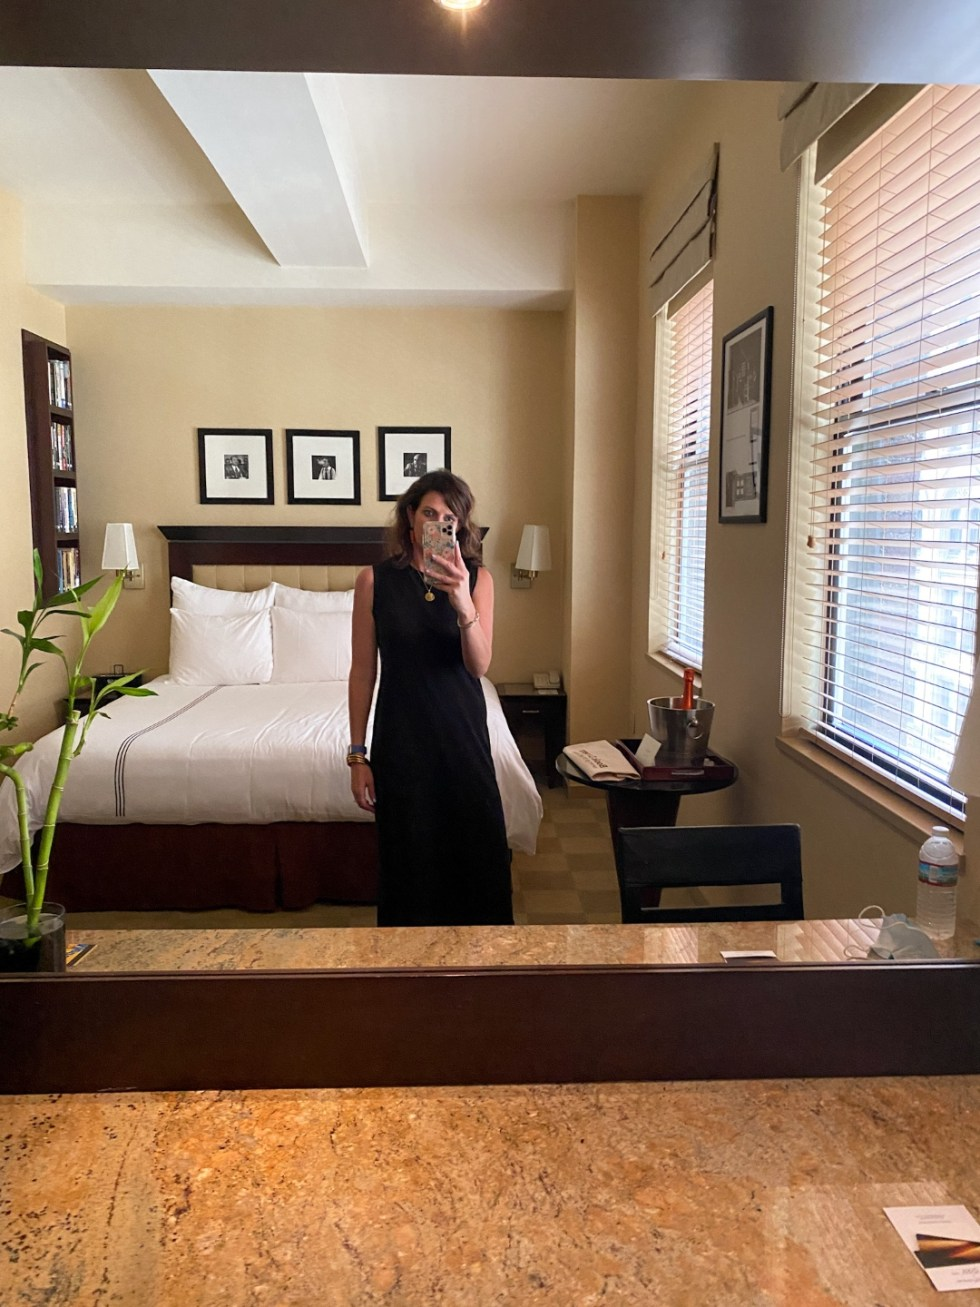 NYC Summer Weekend: Things to Do in NYC in the Summer - I'm Fixin' To - @imfixintoblog   NYC Summer Weekend by popular NC travel blog, I'm Fixin' To: image of a woman wearing a black sleeveless bodycon dress and taking a selfie in a mirror.